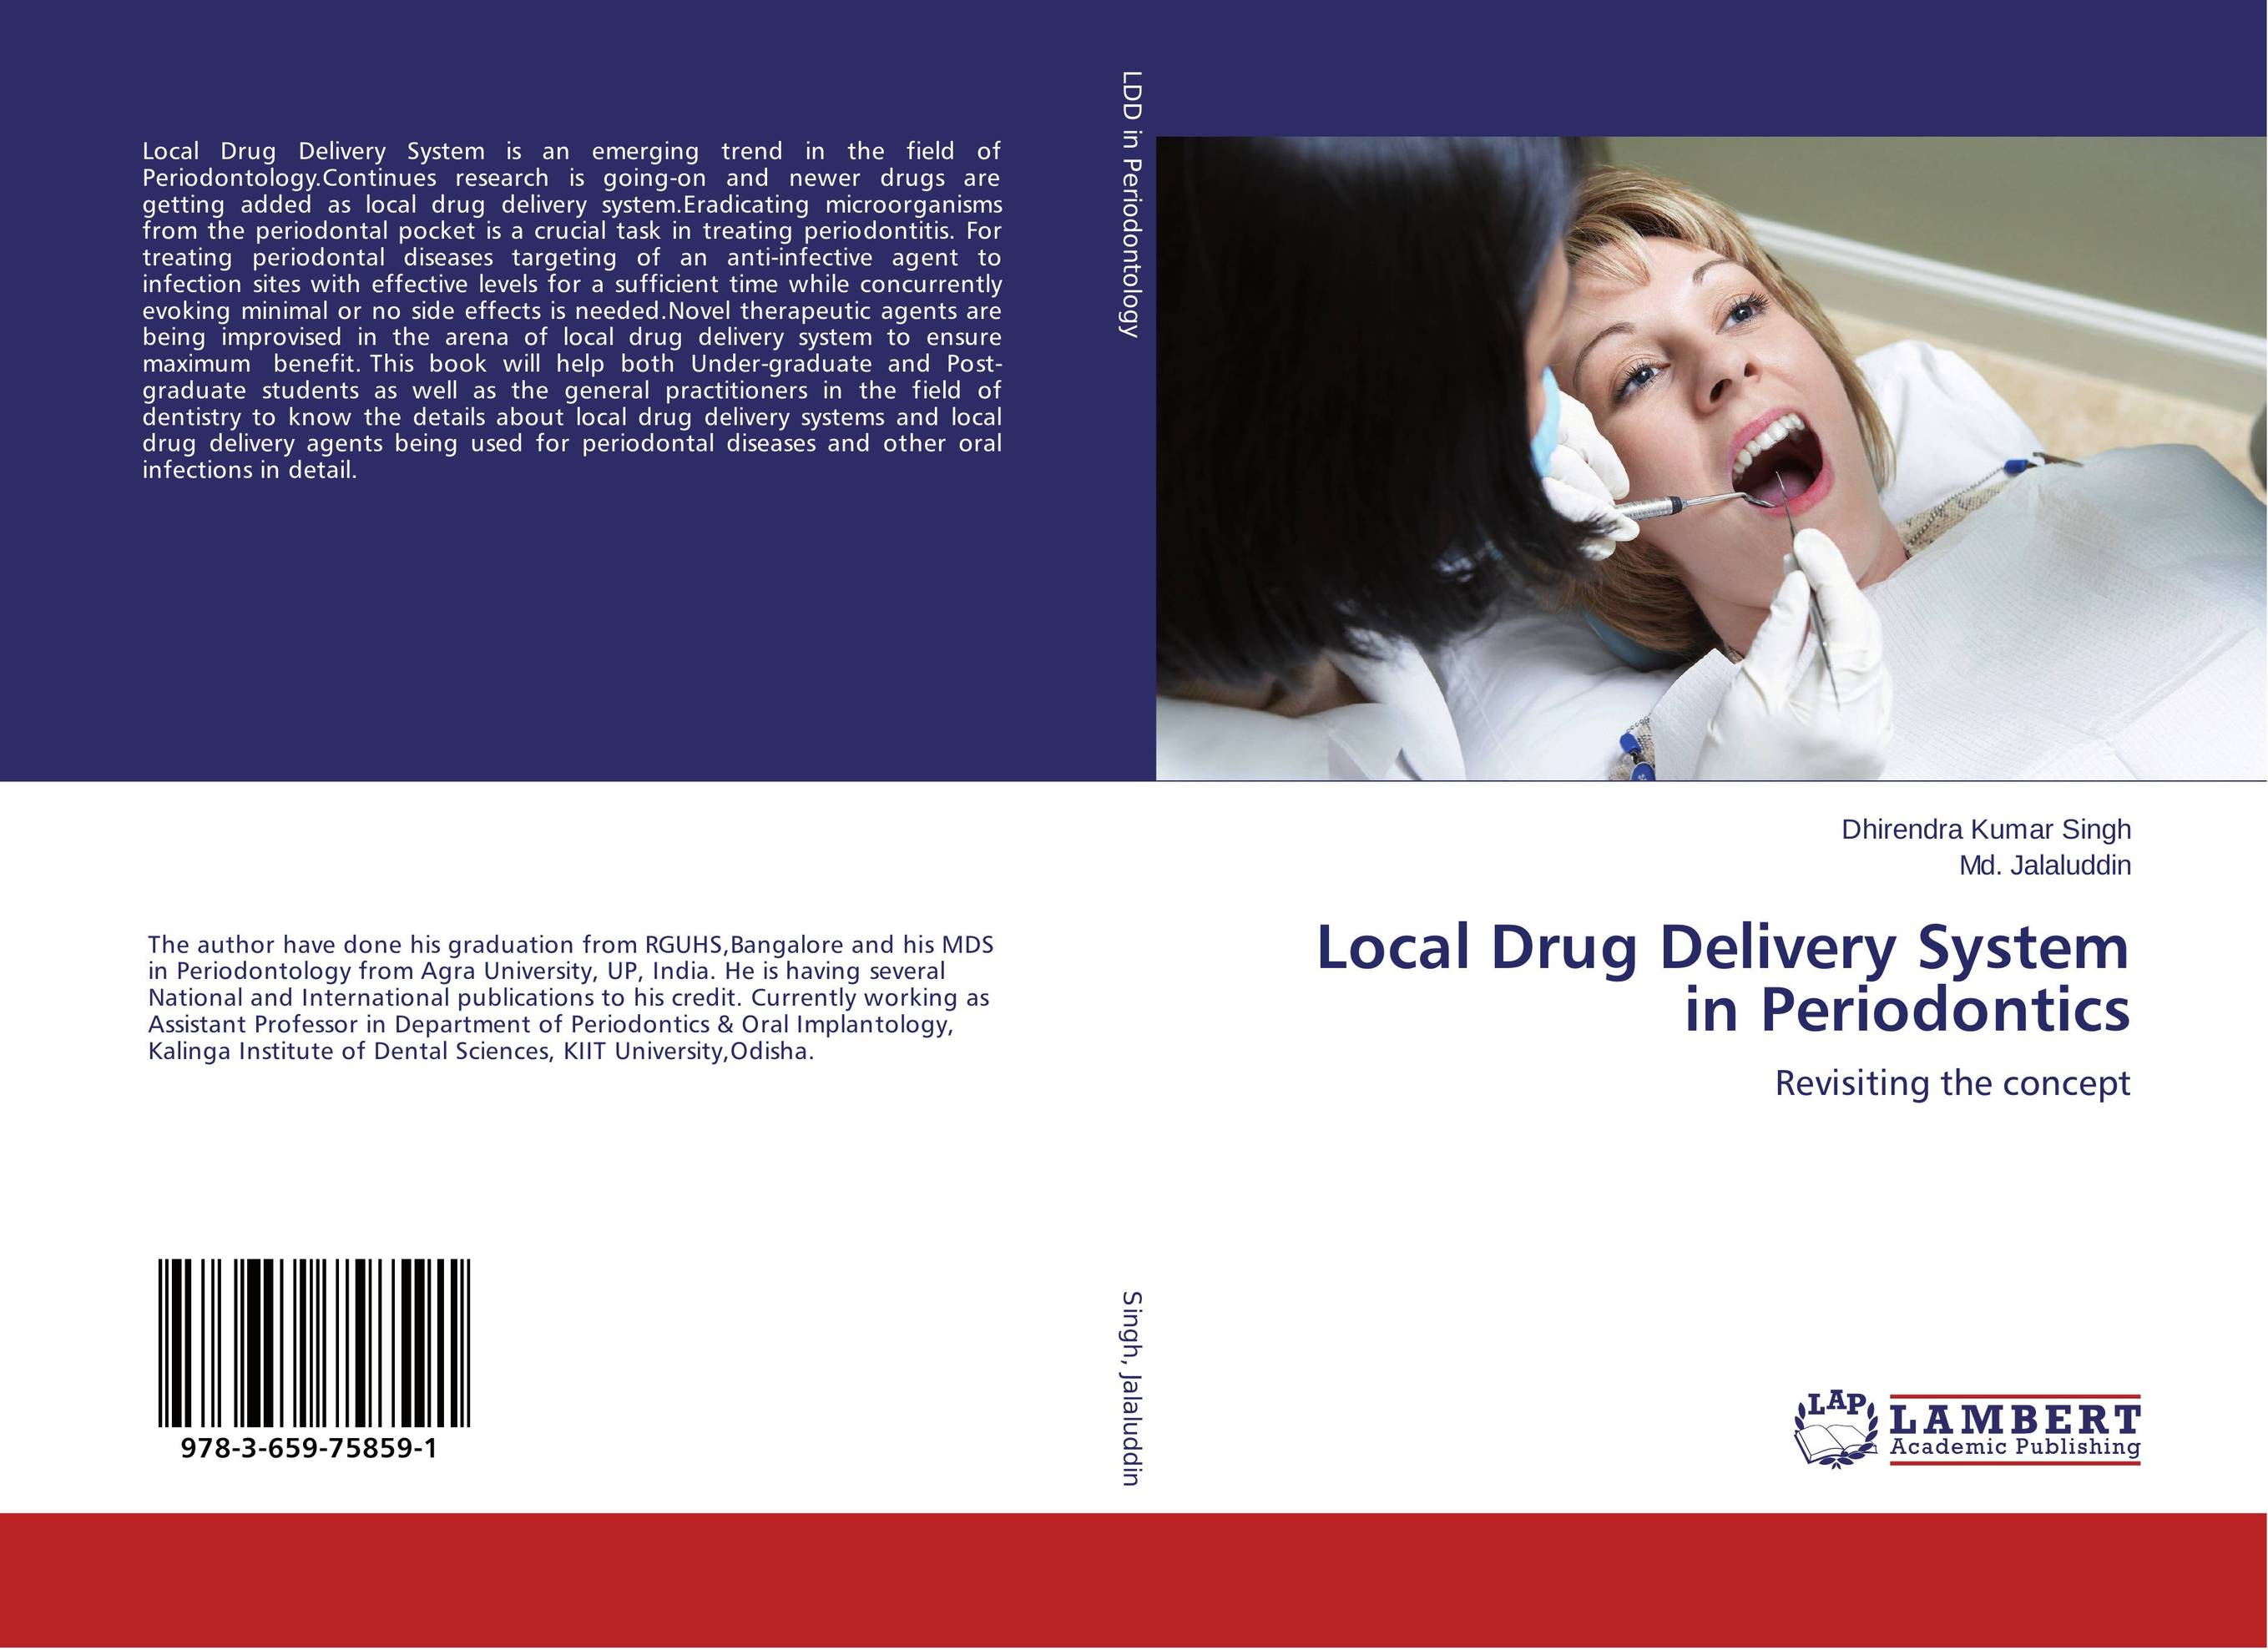 Local Drug Delivery System in Periodontics kamal singh rathore shreya patel and naisarg pujara nanoparticulate drug delivery system